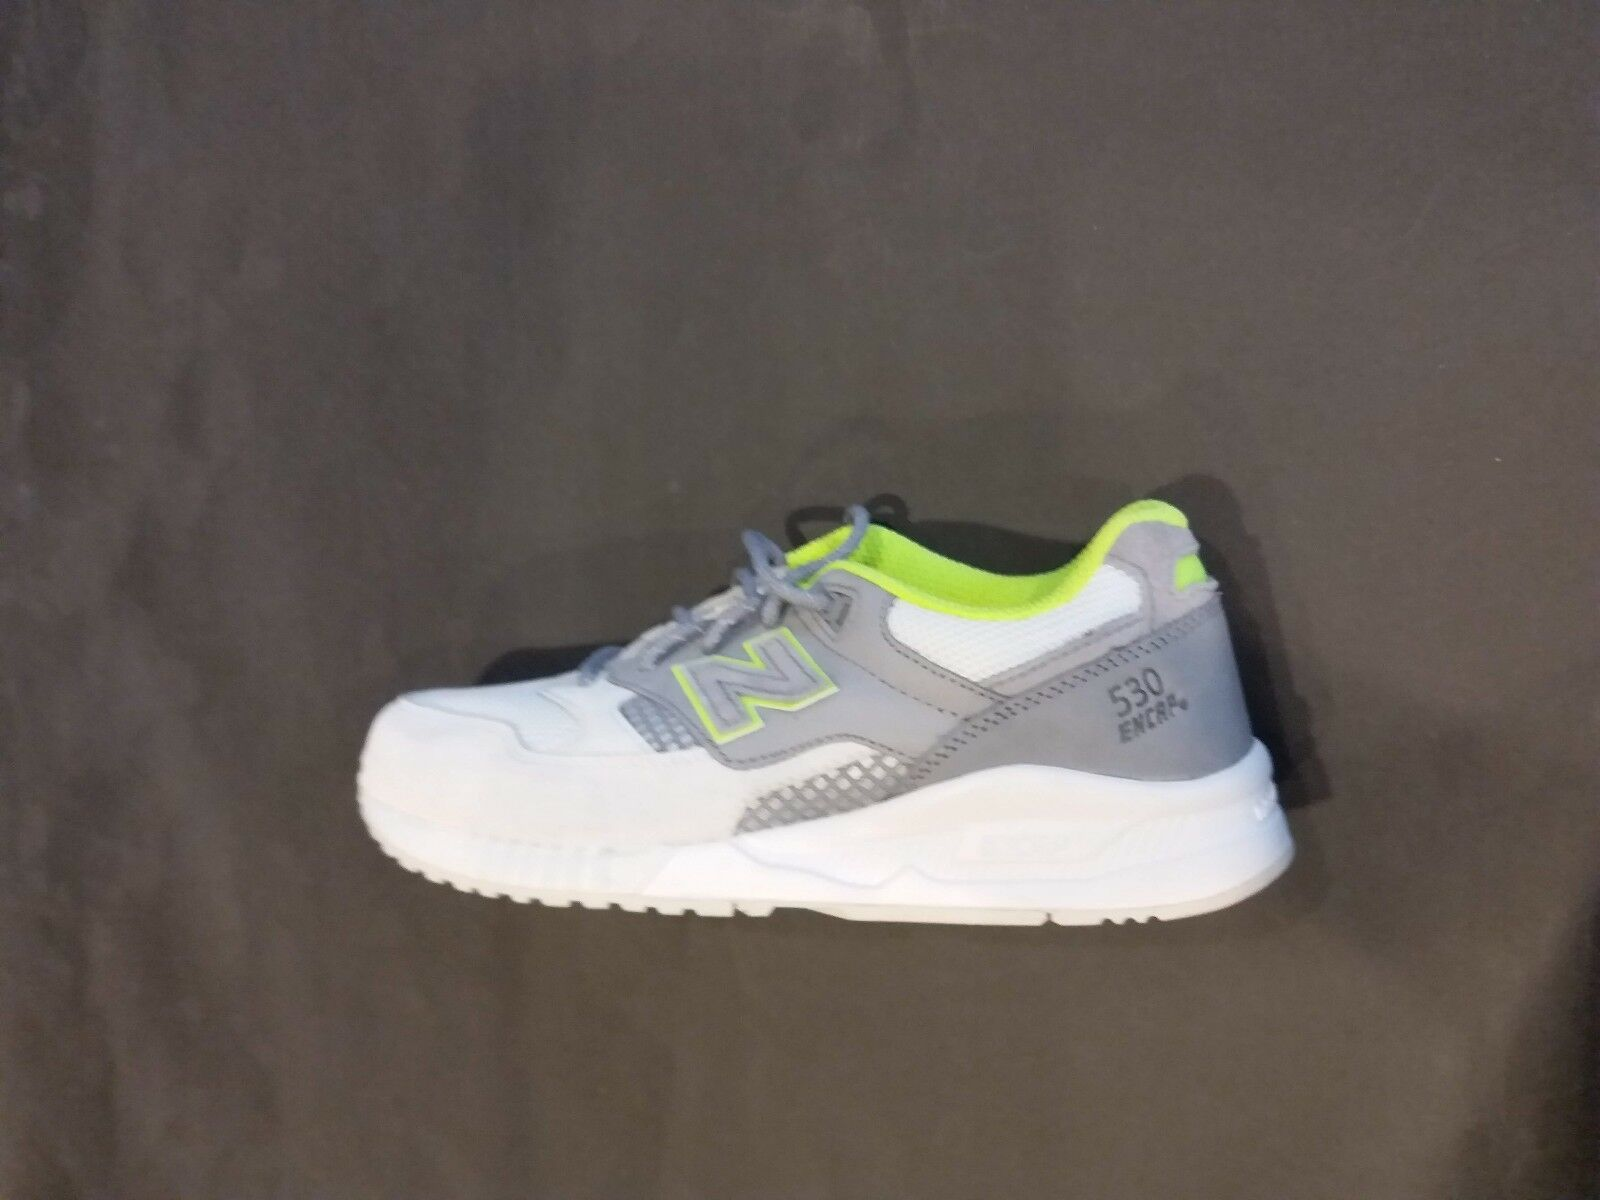 119 NIB Men's New Balance 530 90's Retro Shoes M530HVZ 311 999 SZ-8.5